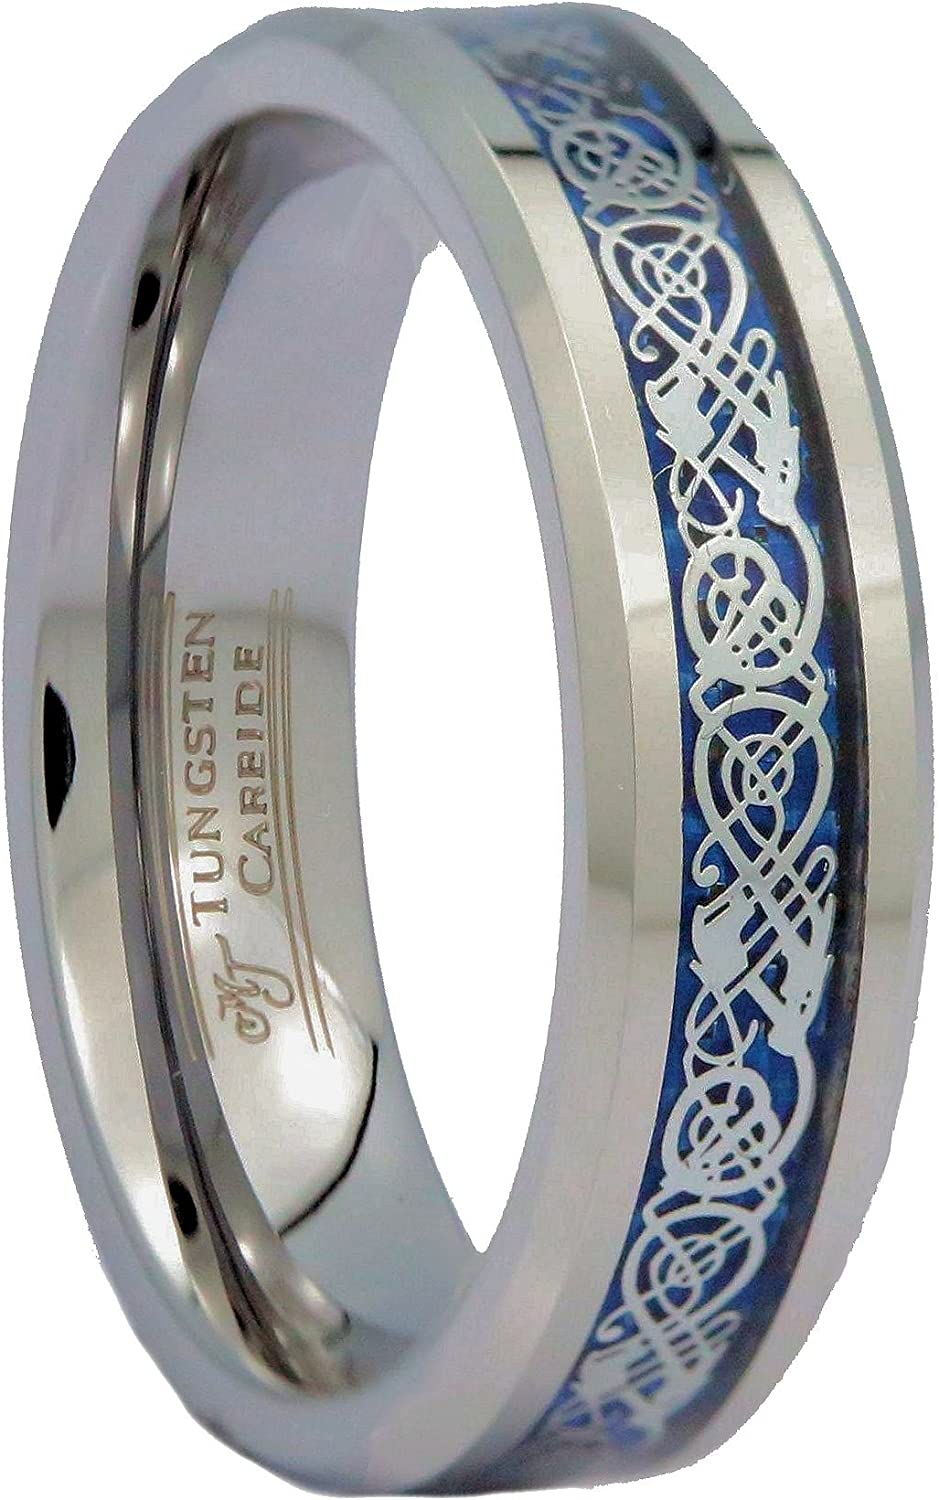 MJ Metals Jewelry Blue Celtic Dragon 6 or 8mm Men's/Women's Tungsten Carbide Wedding Band Ring